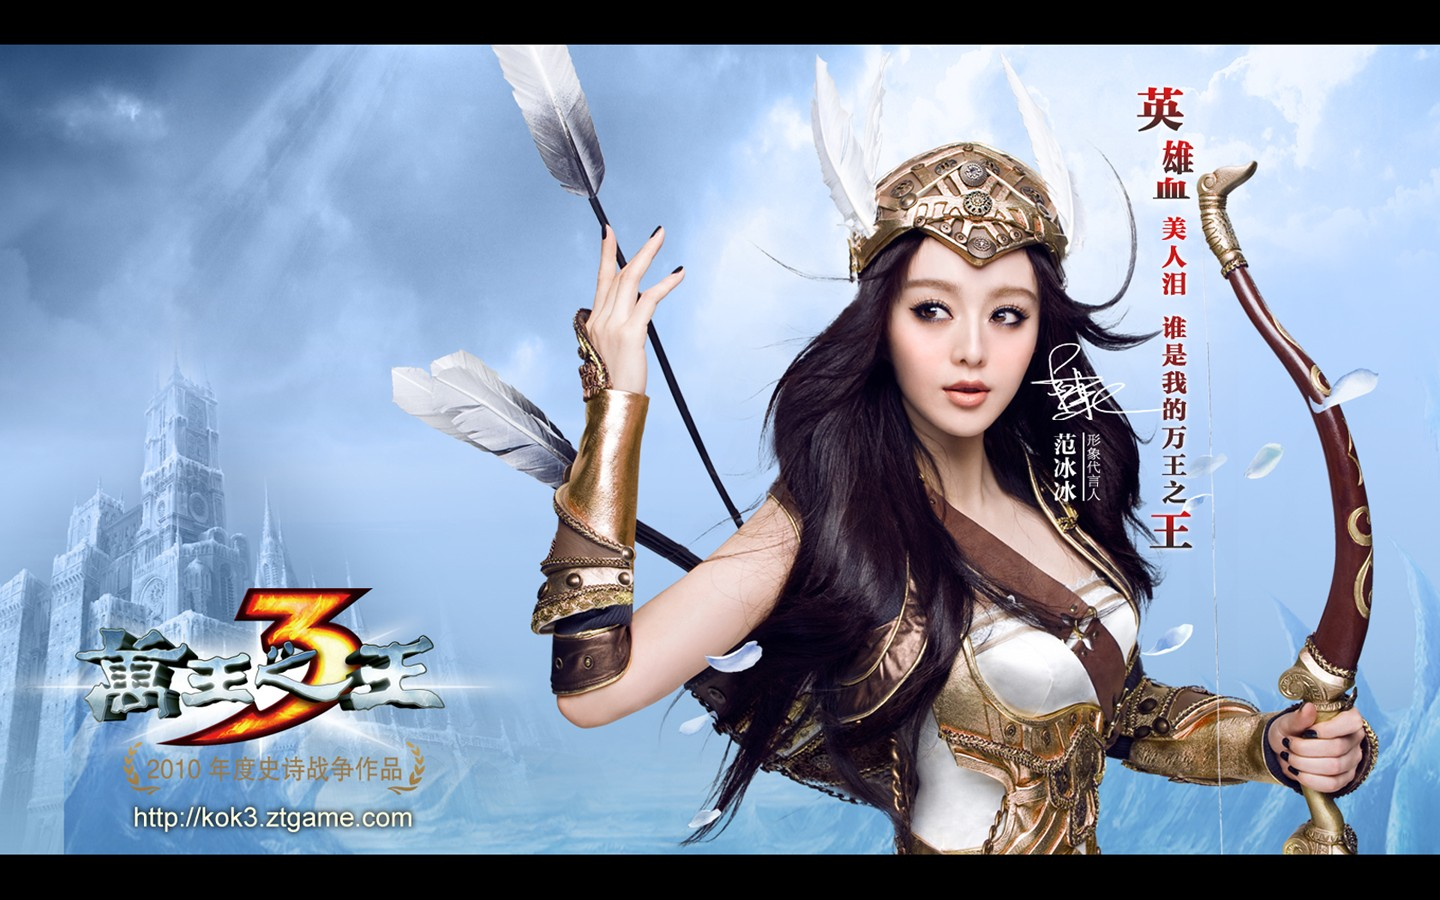 King of Kings three Ranger Fan Bingbing version 30272